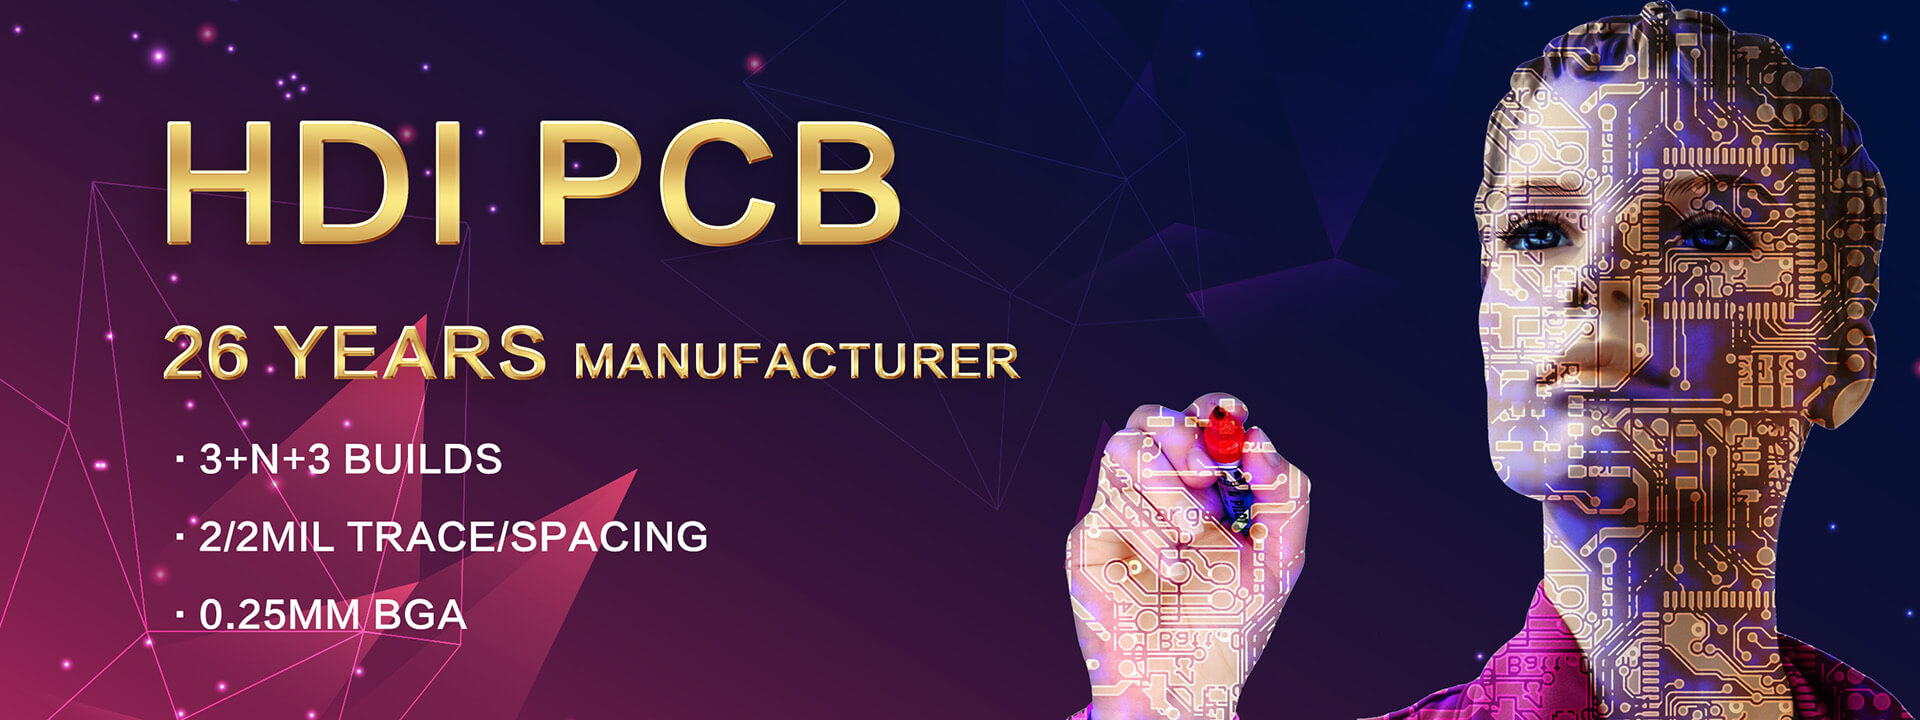 PS Electronics focuses on 4-20 layers HDI PCBs